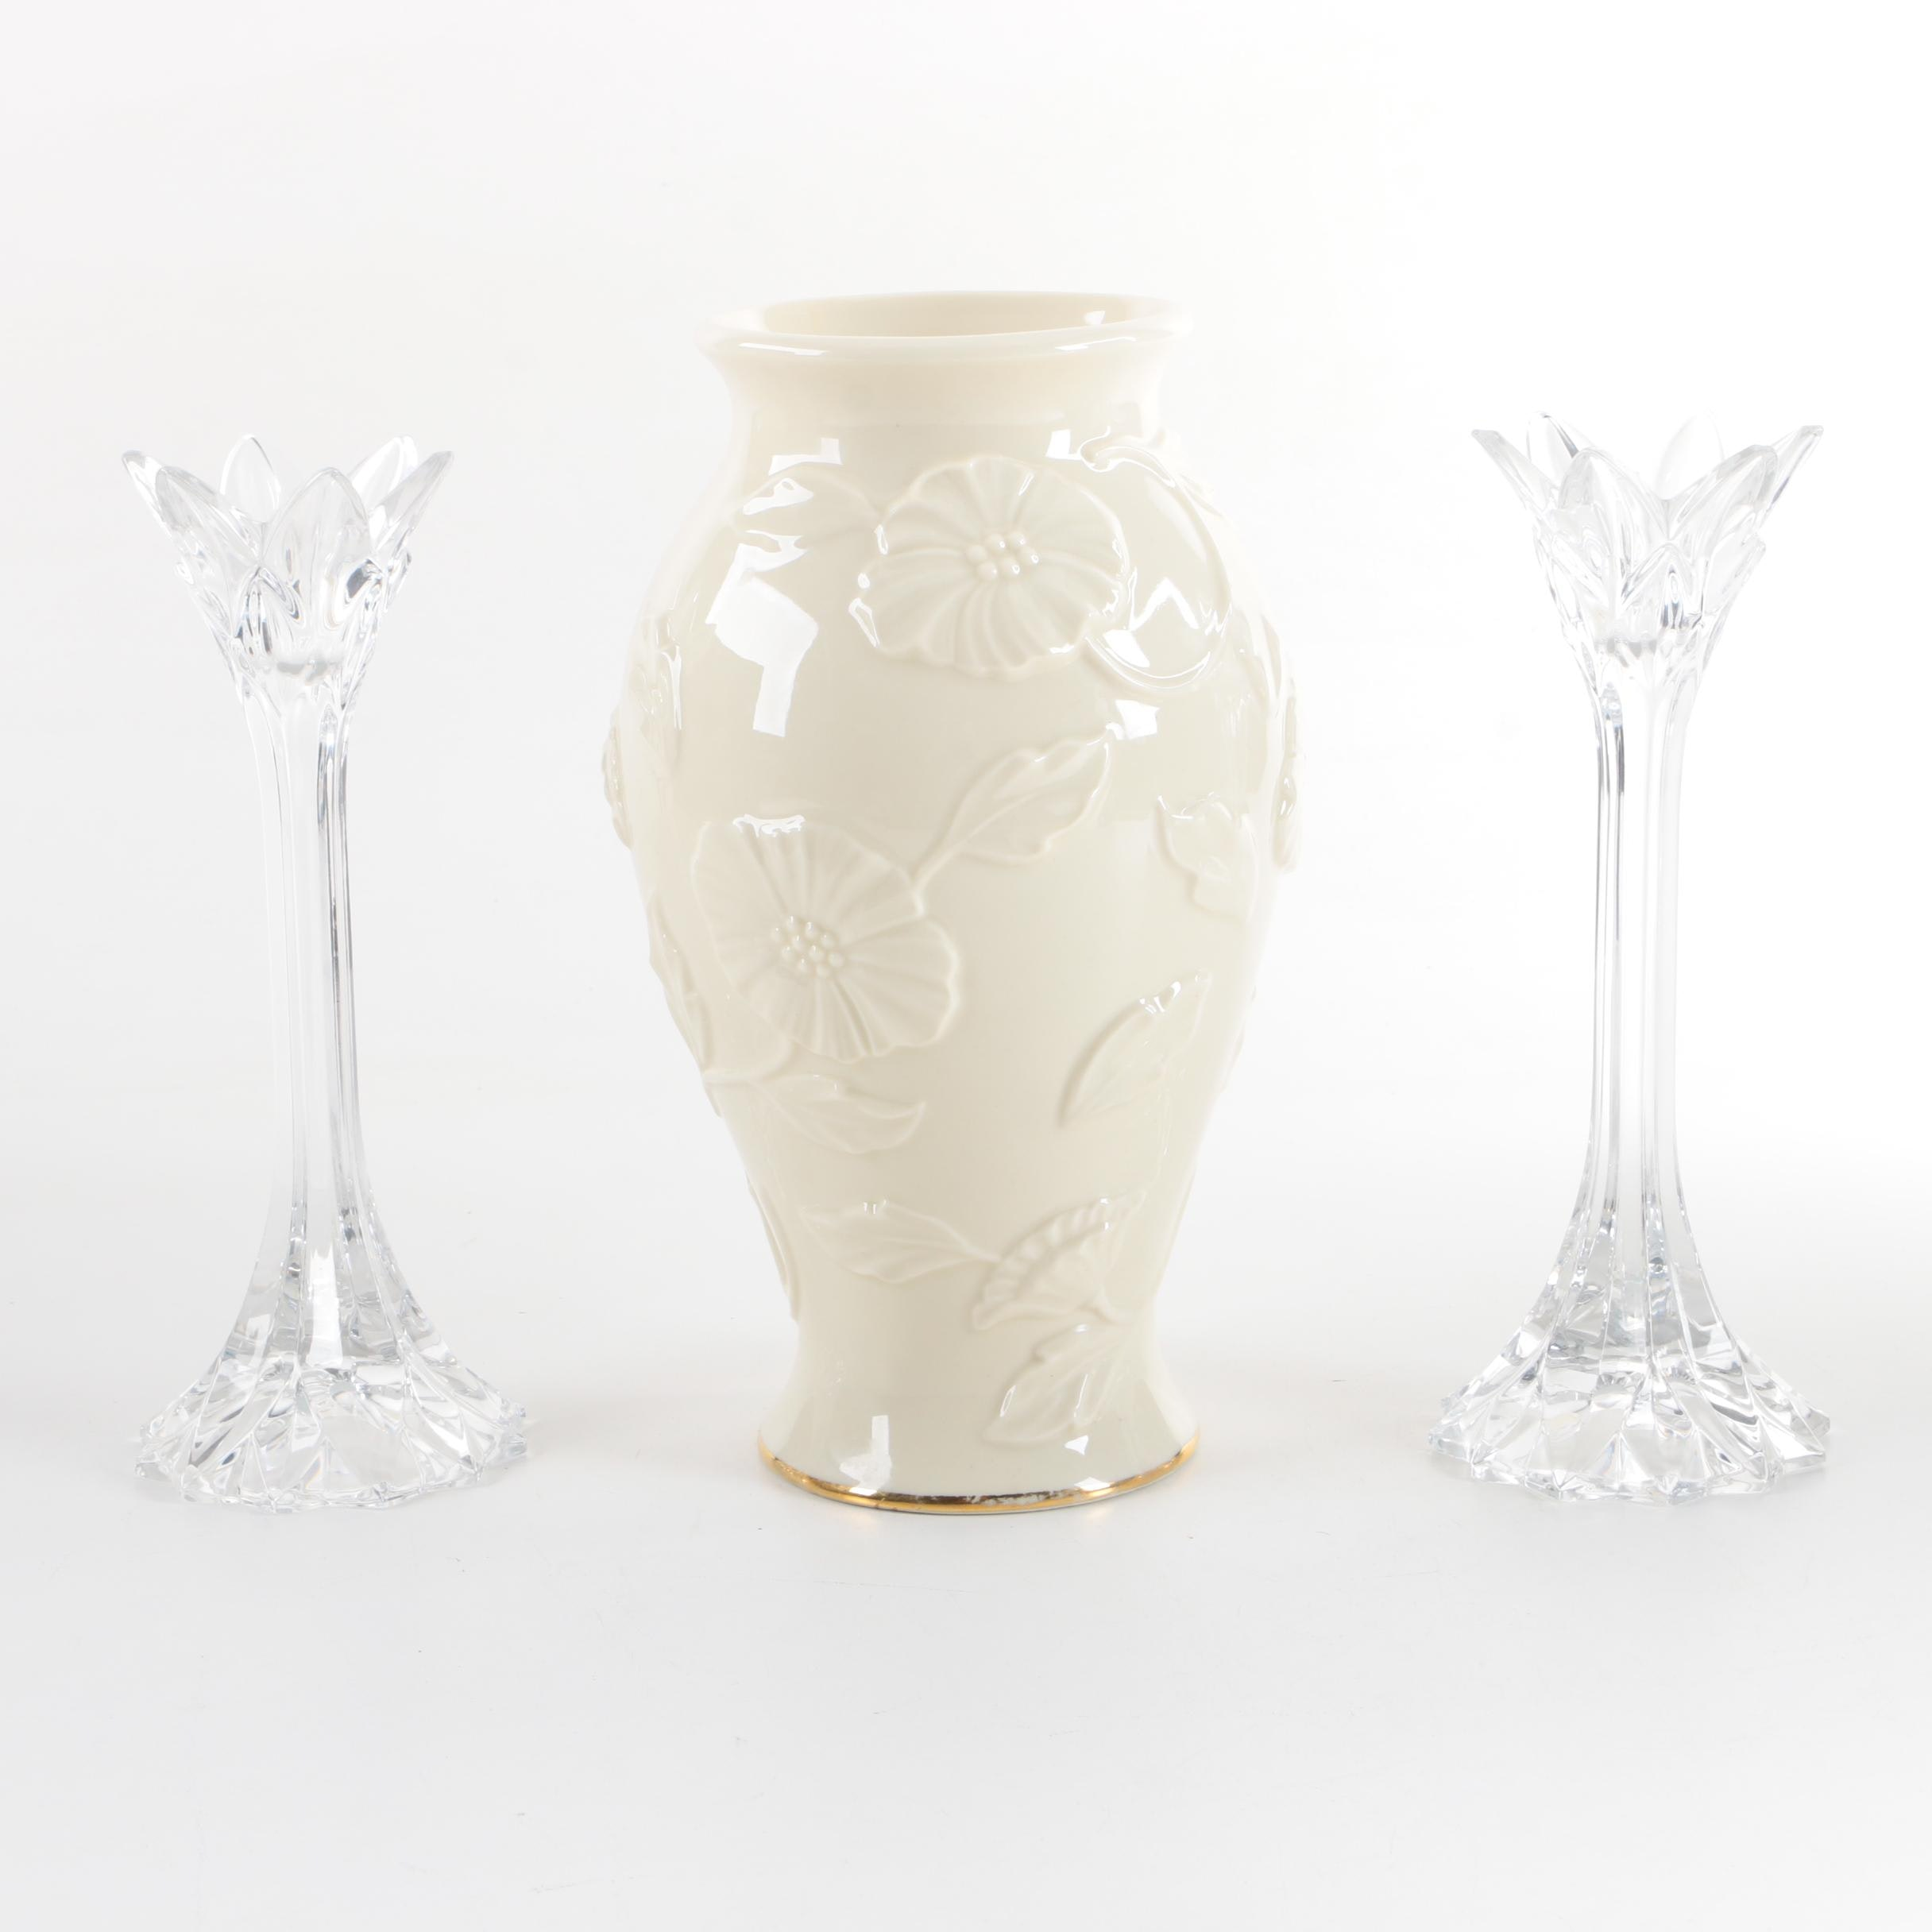 Lenox Crystal Candle Holders and Porcelain Vase